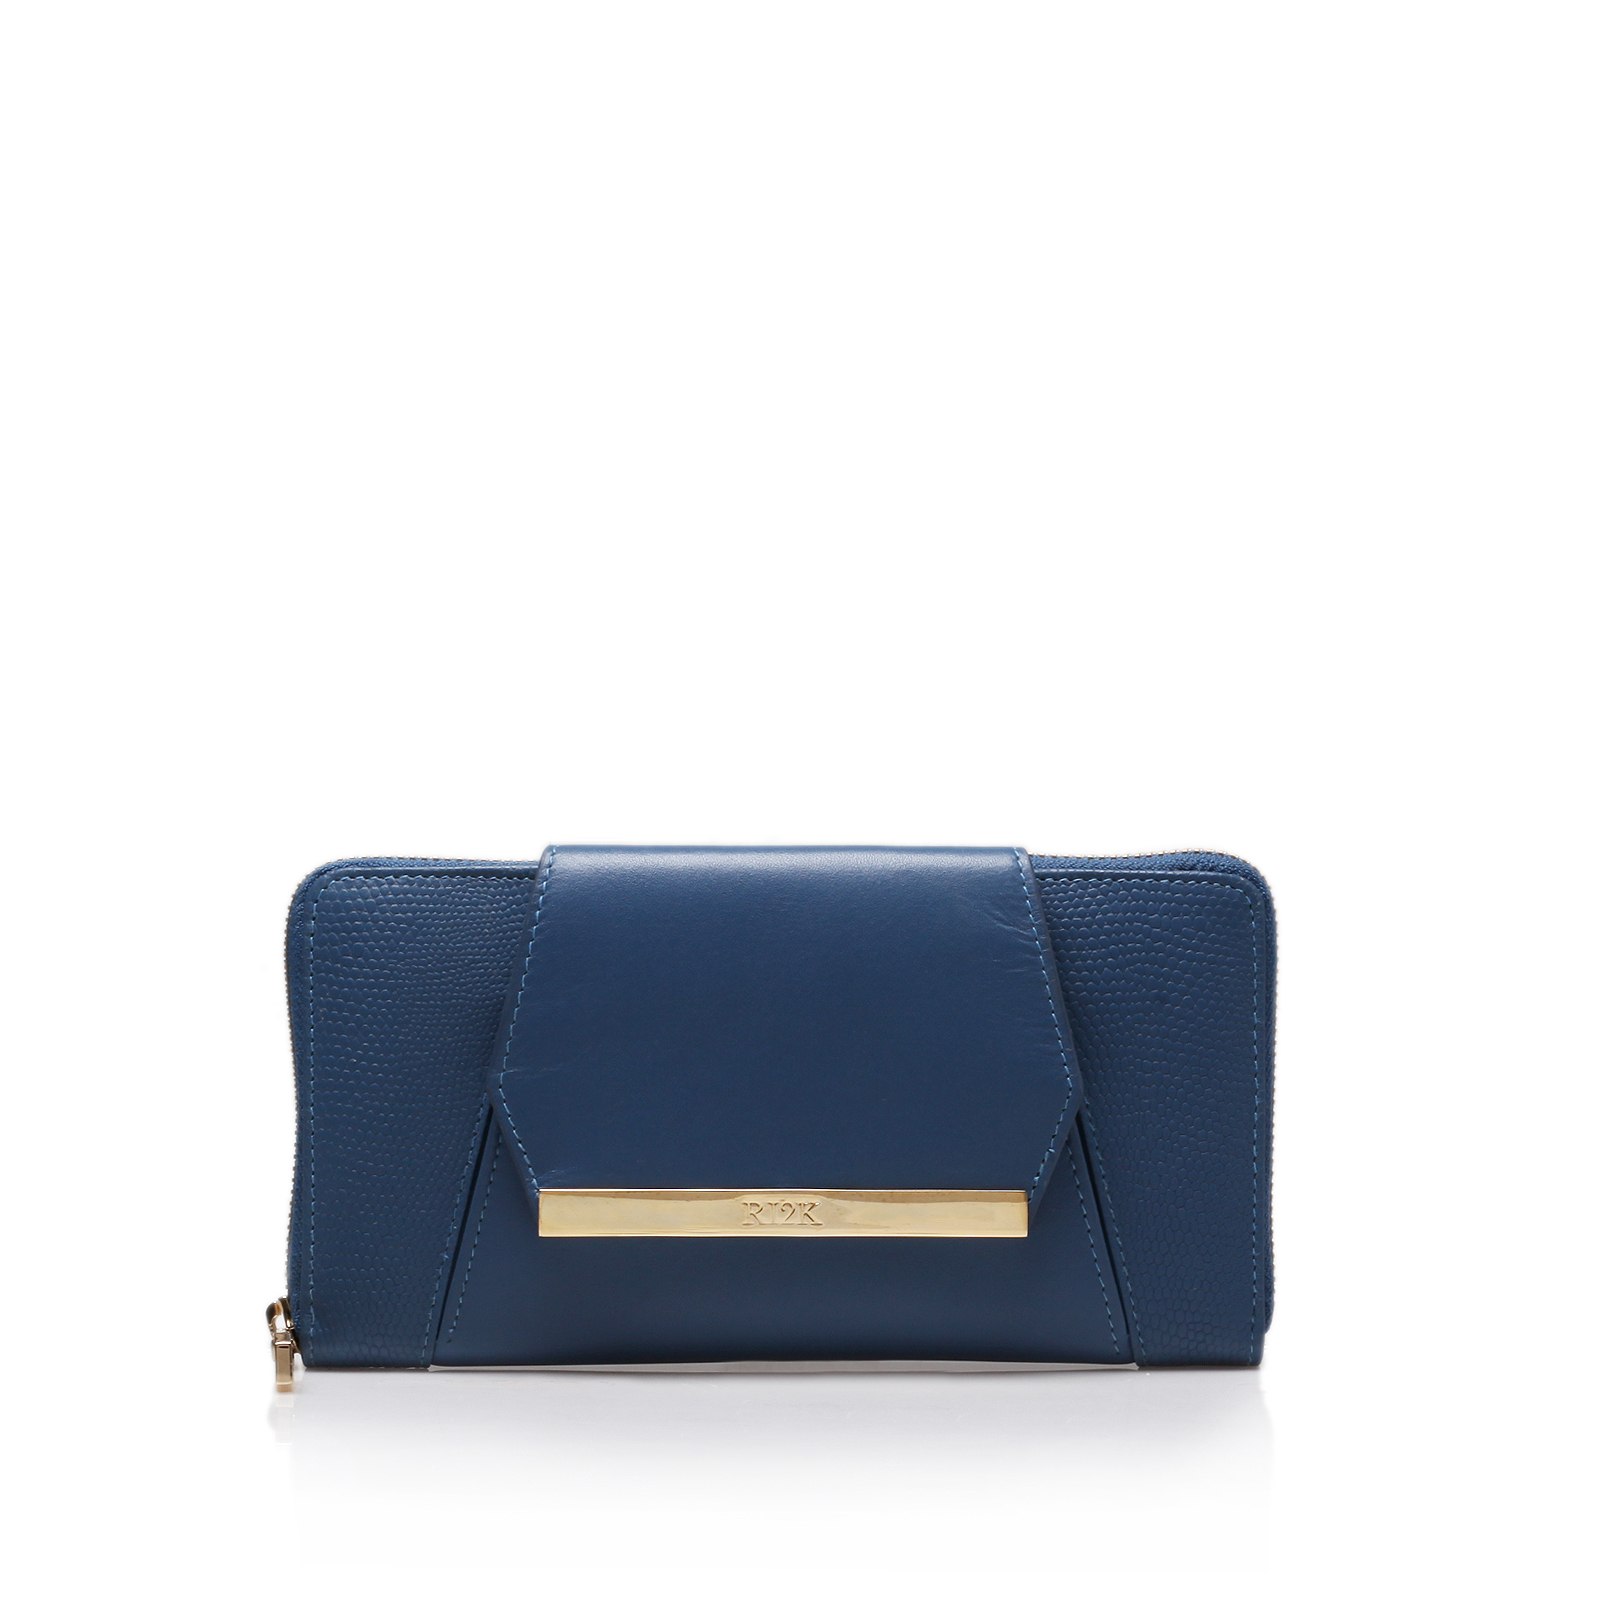 ISABELLA LEATHER PURSE